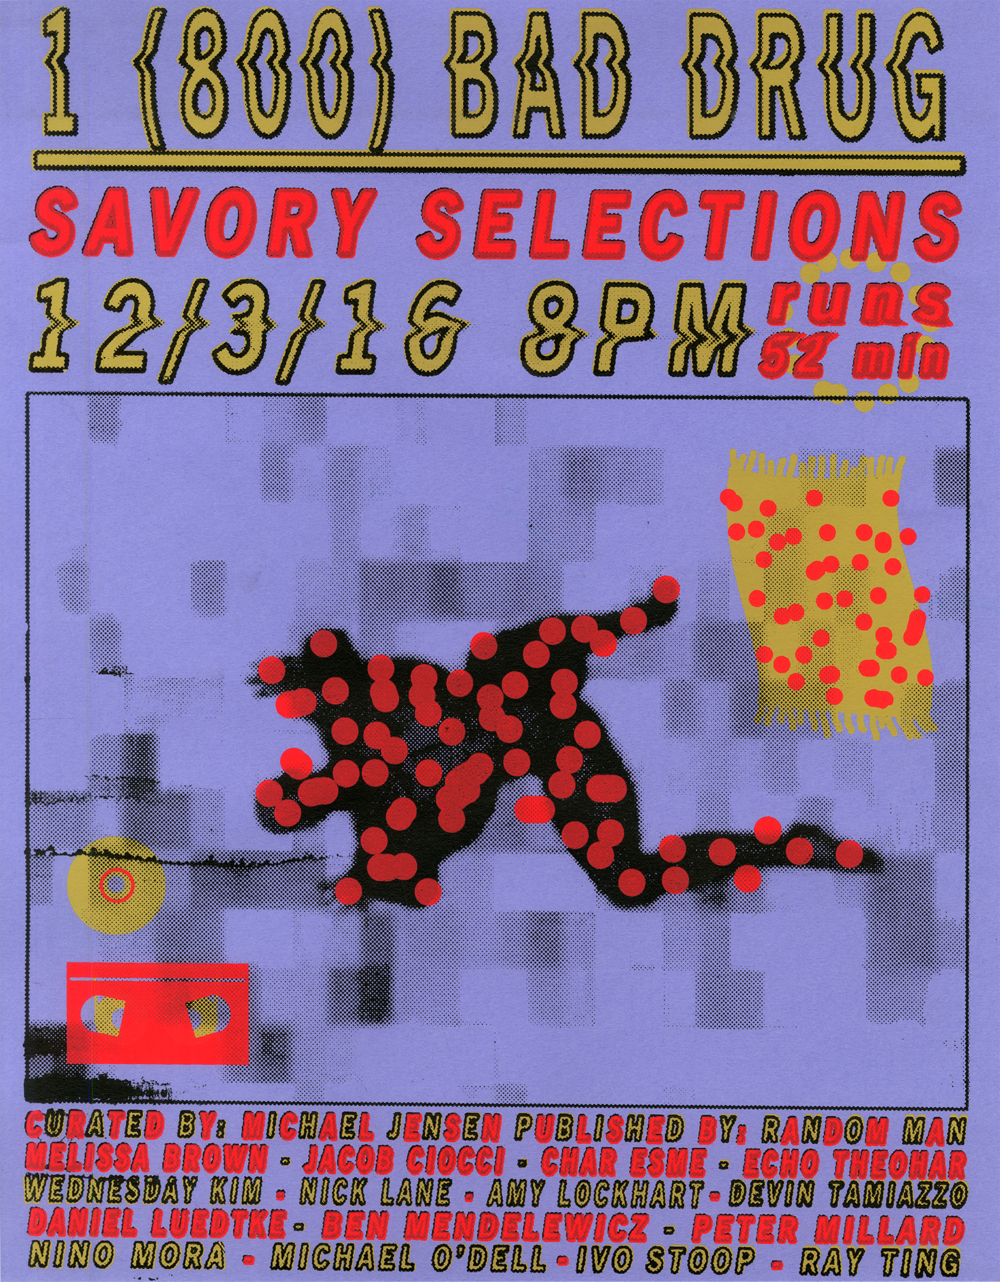 1 (800) BAD-DRUG: SAVORY SELECTIONS